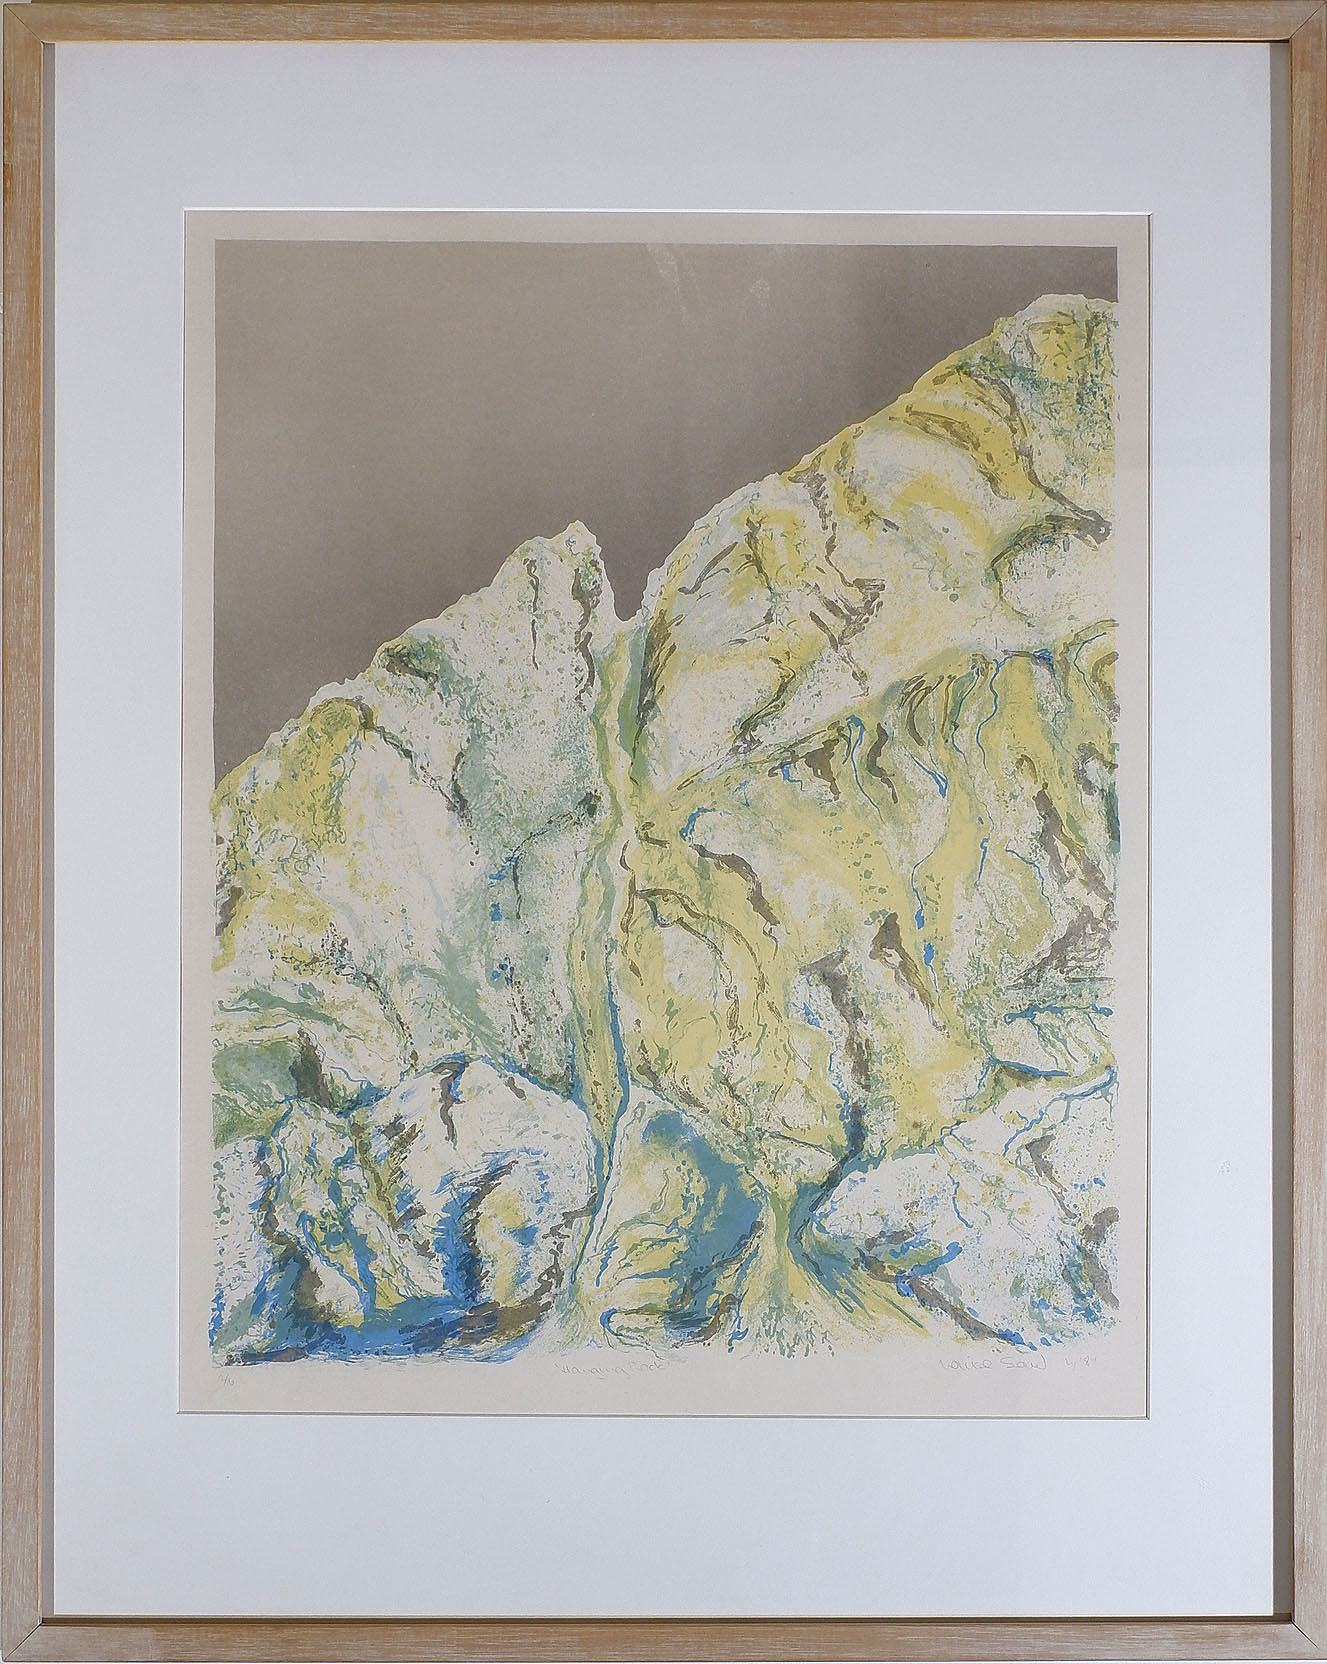 'Louise Saw, Hanging Rock, Colour Lithograph '